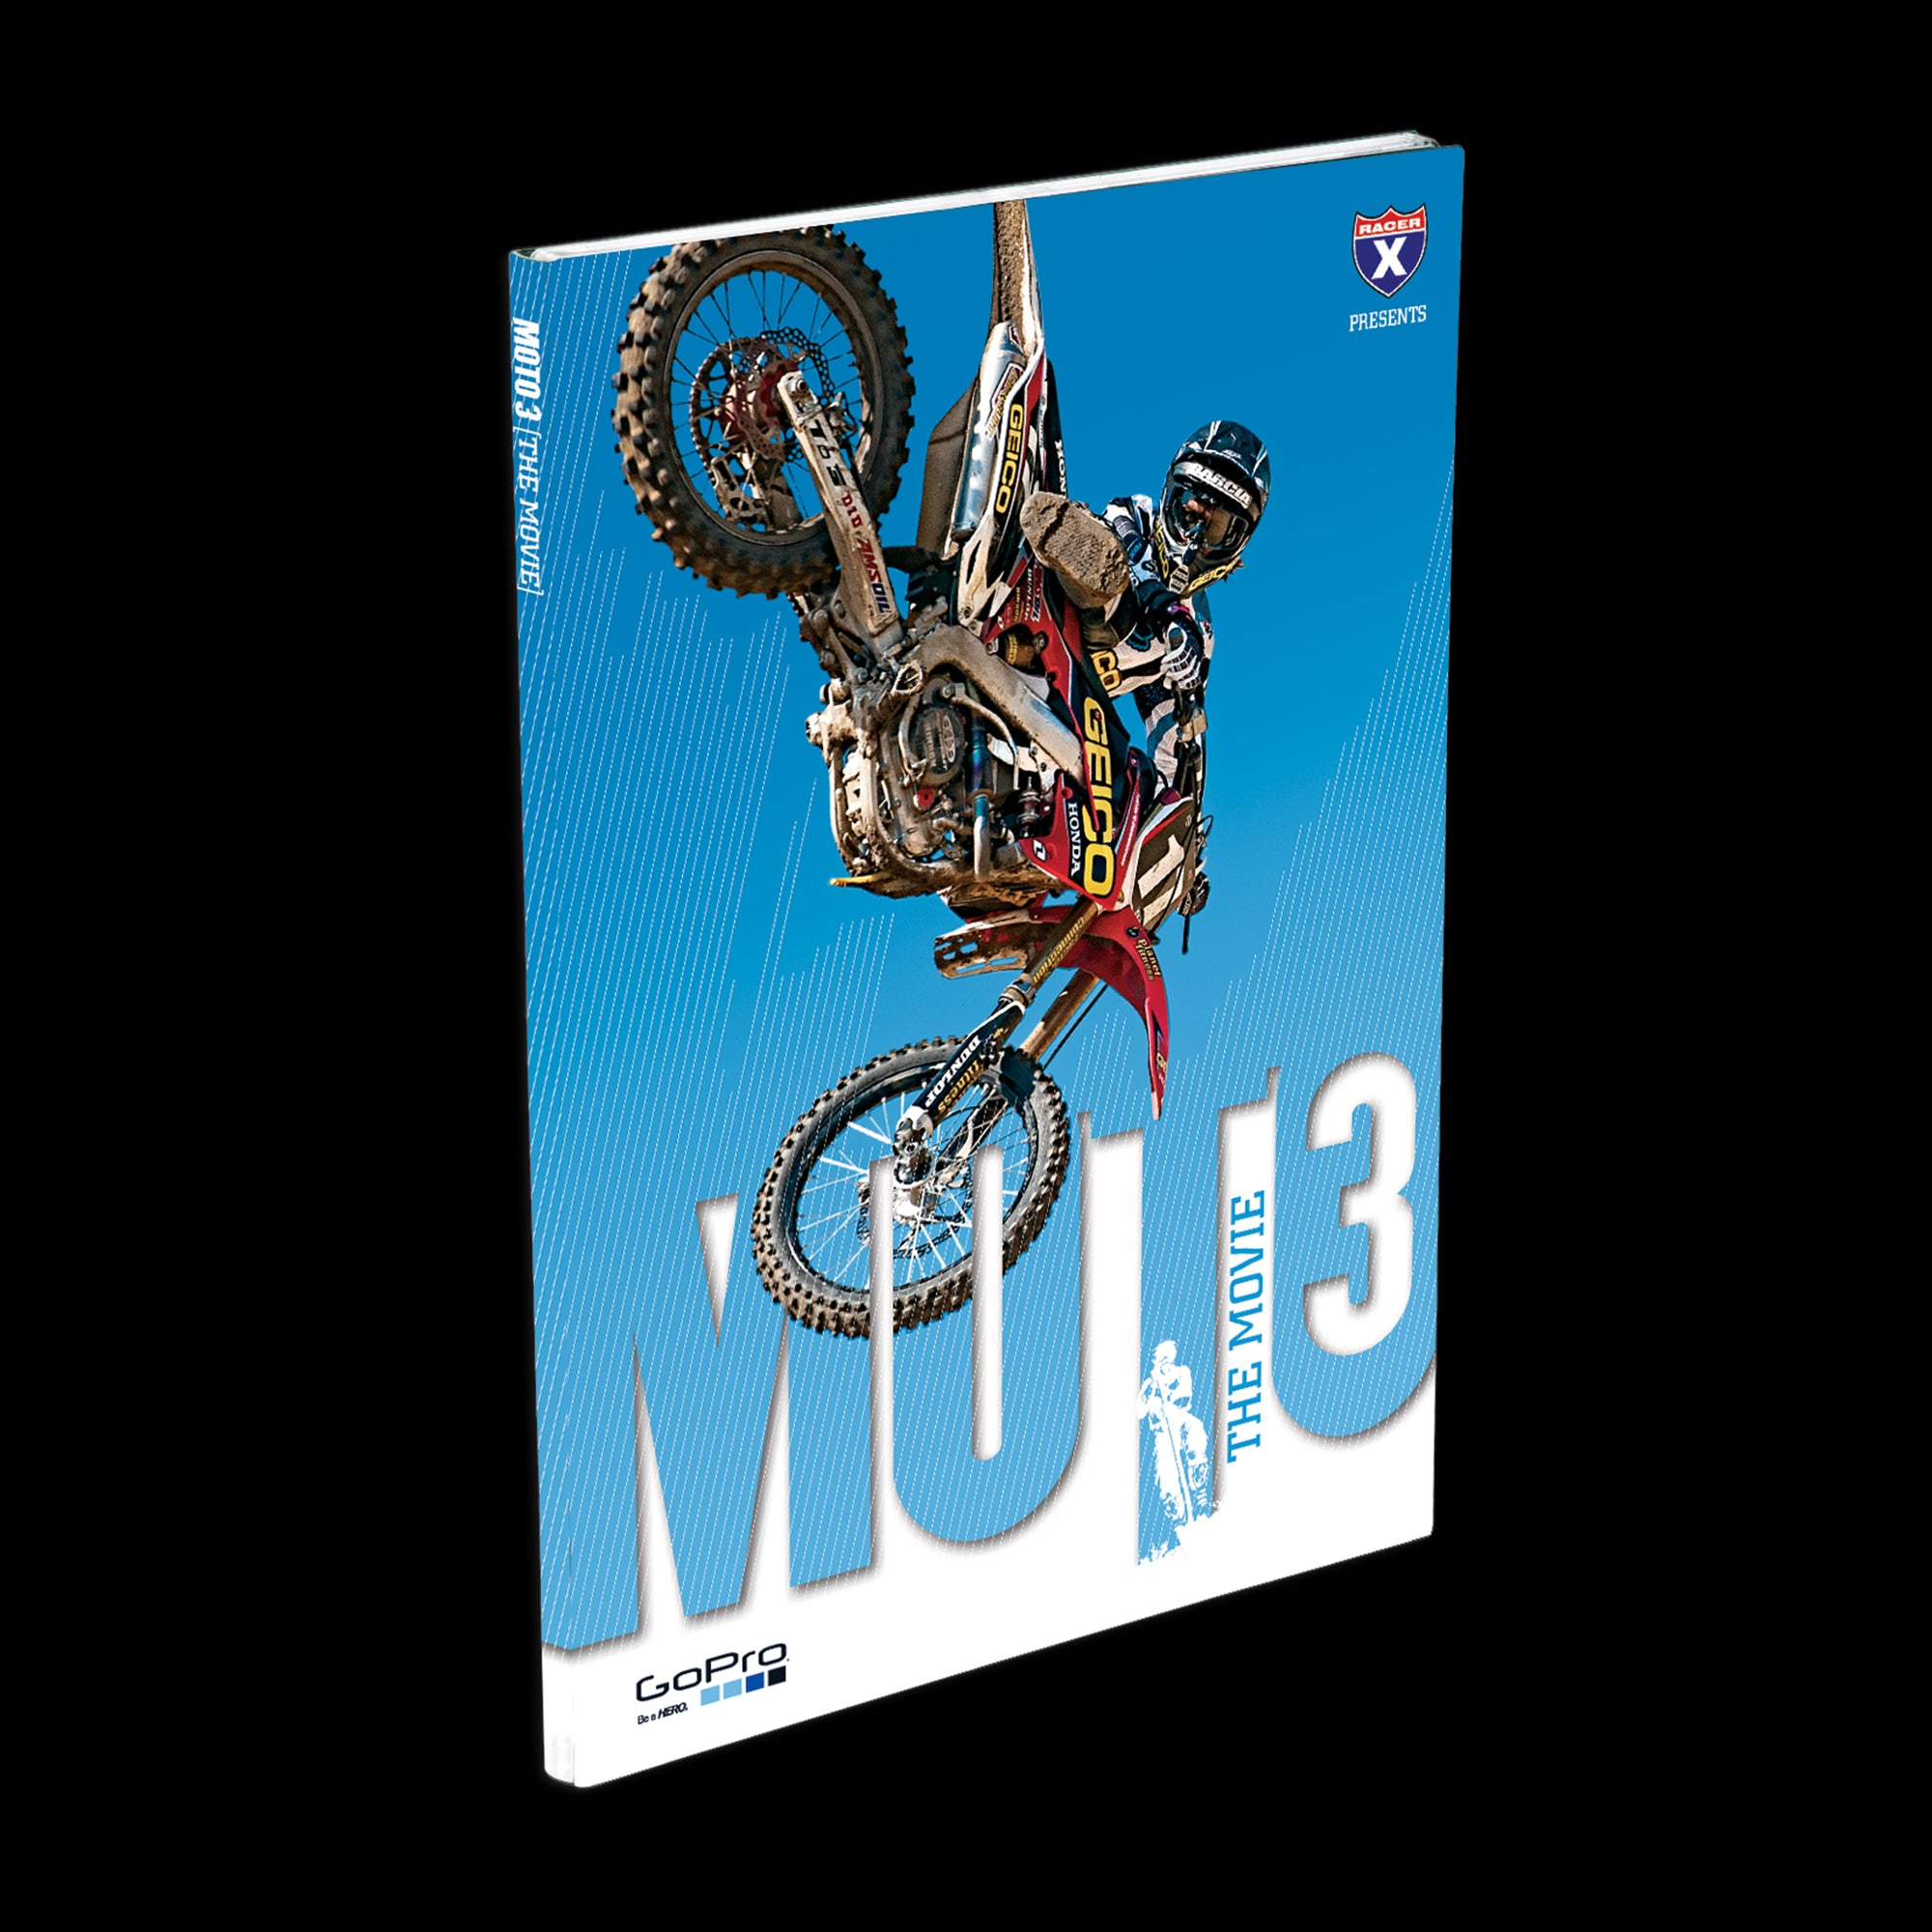 MOTO 3 The Movie